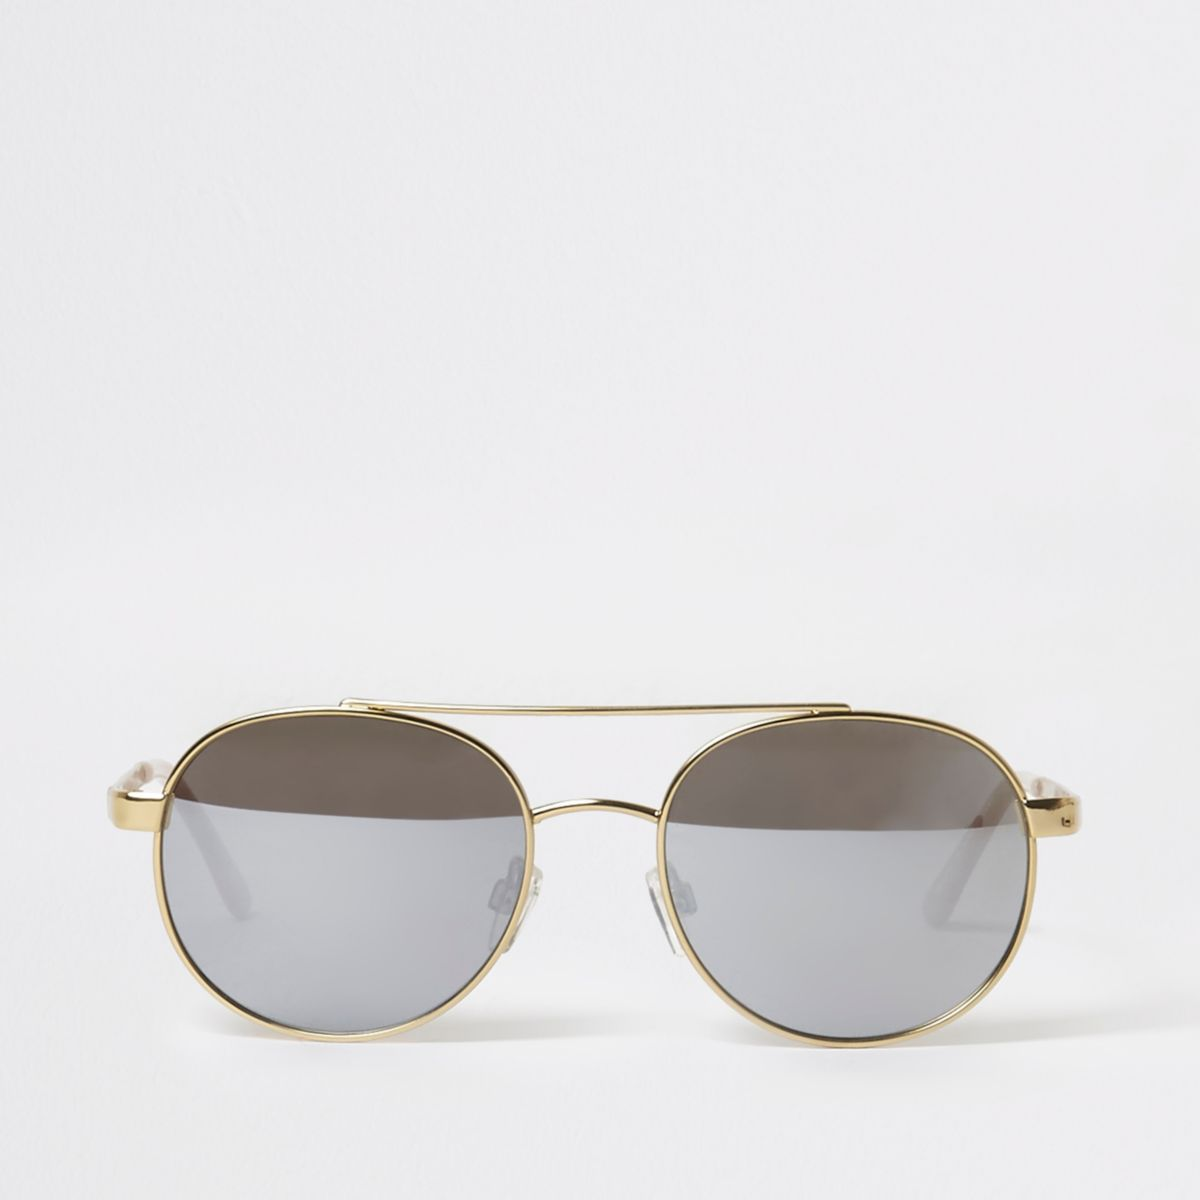 Gold tone round frame aviator sunglasses